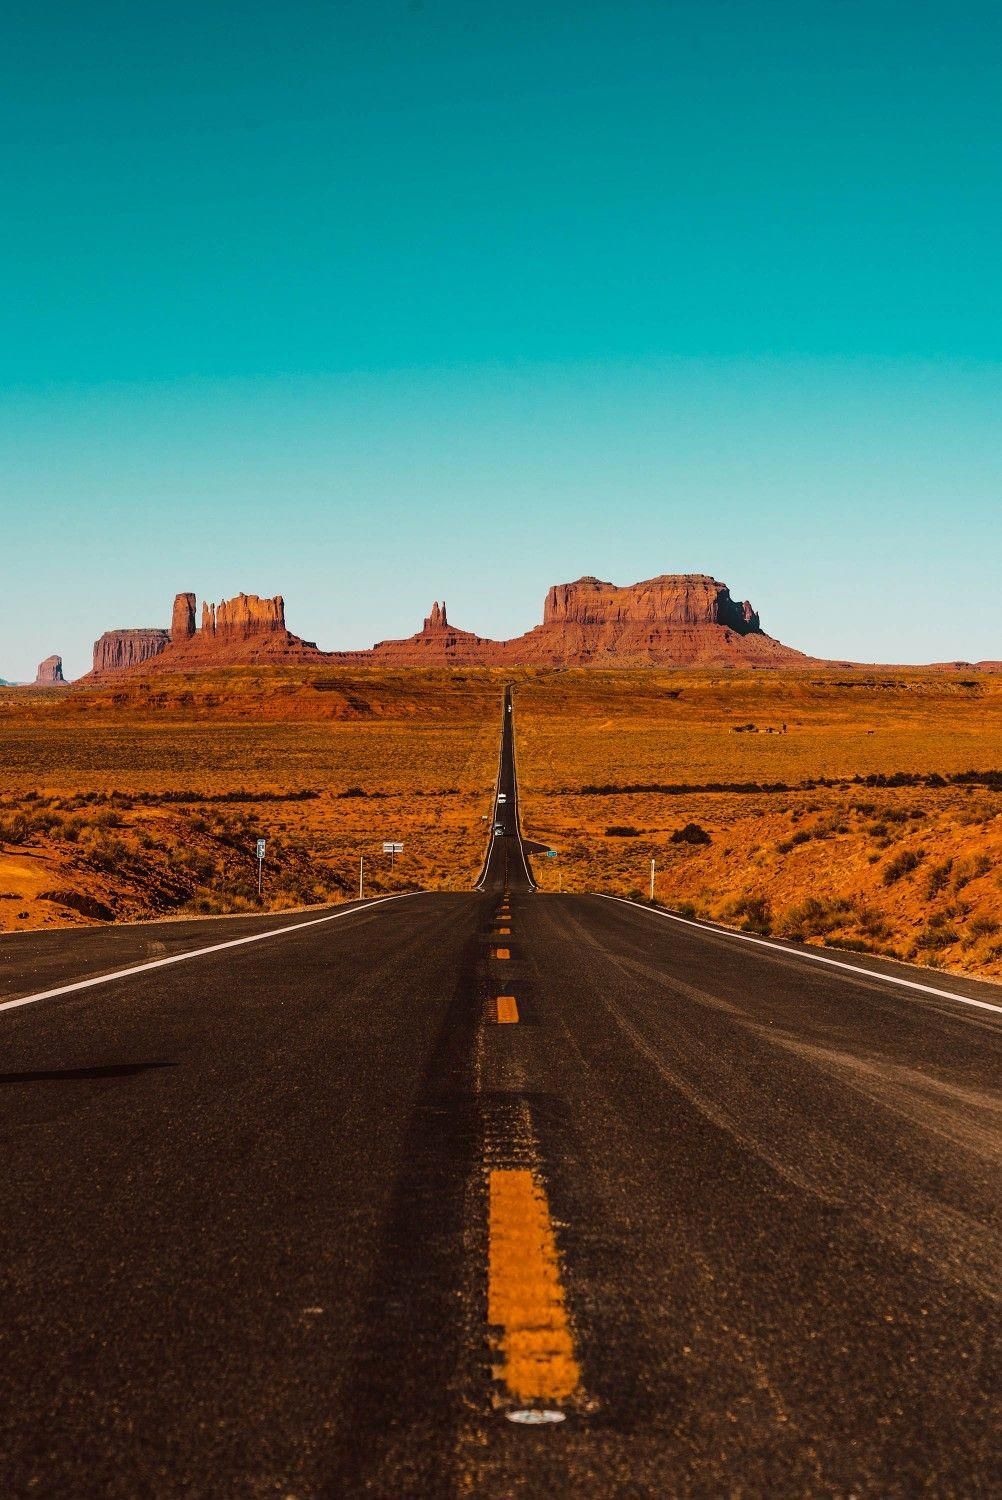 Straight Road Wallpaper Android Wallpaper Iphone Wallpaper Hdwallpaper Best Wallpaper Pc Hd Wallpaper Road Trip Usa Monument Valley American Road Trip